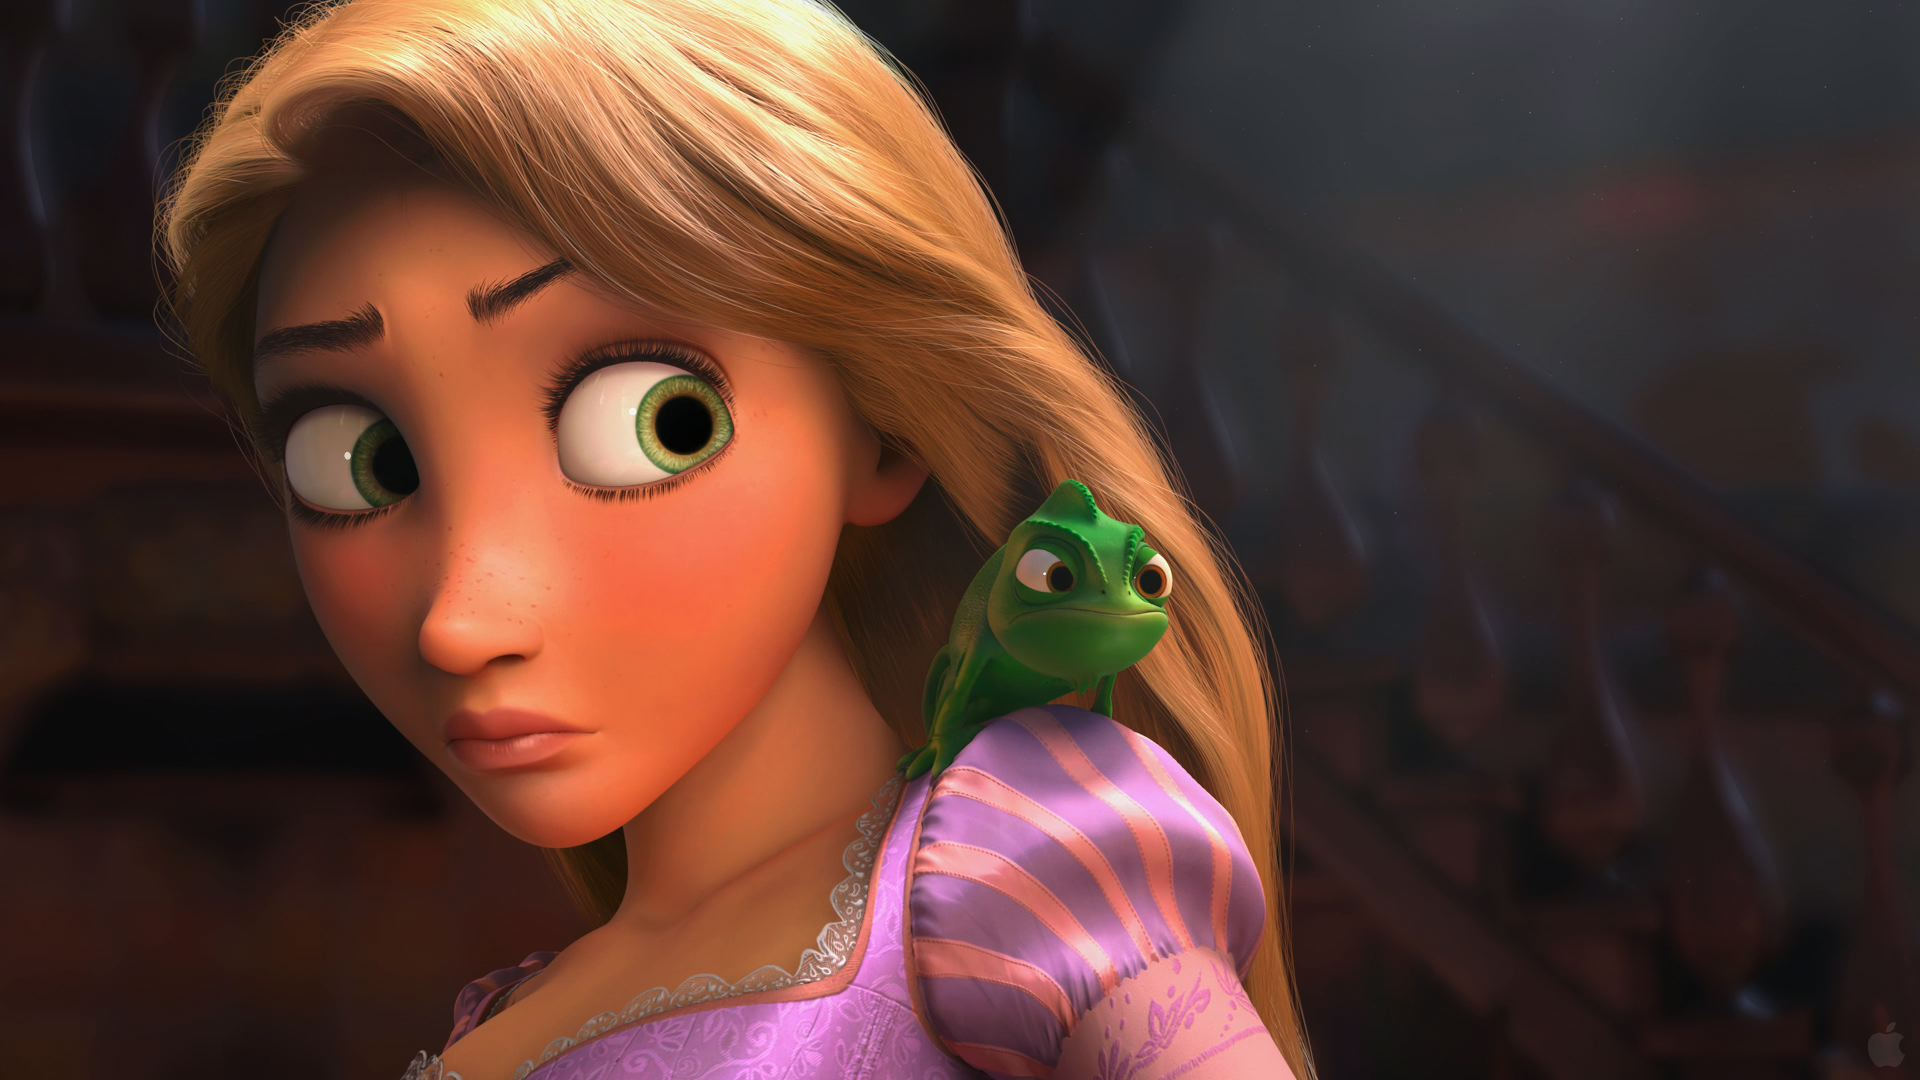 rapunzel and pascal from tangled desktop wallpaper